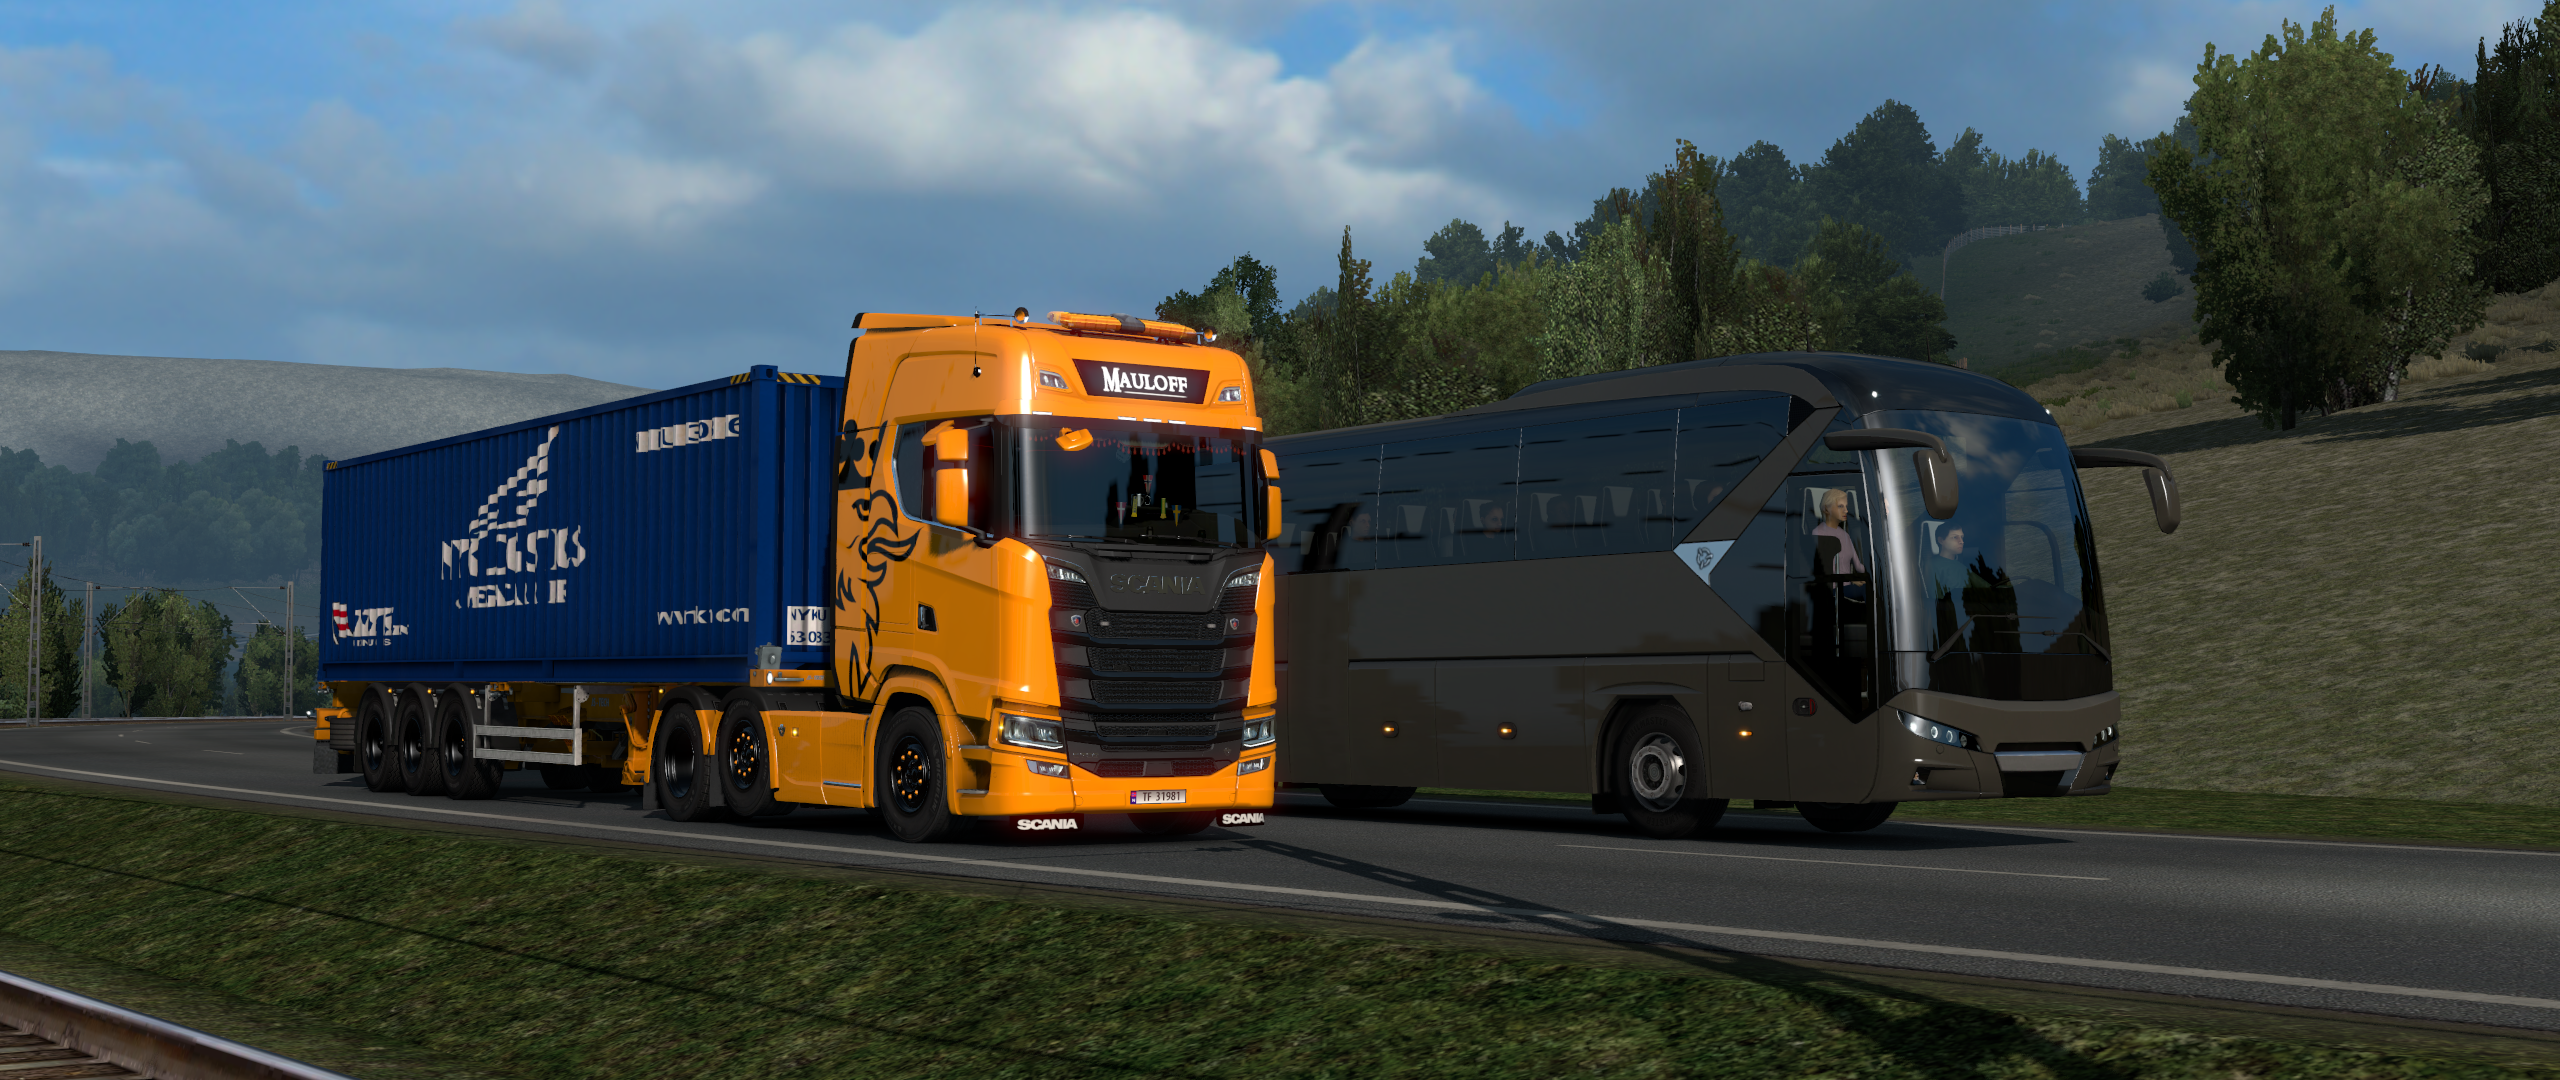 Screenshots Ets2_20190710_130722_m8k2d